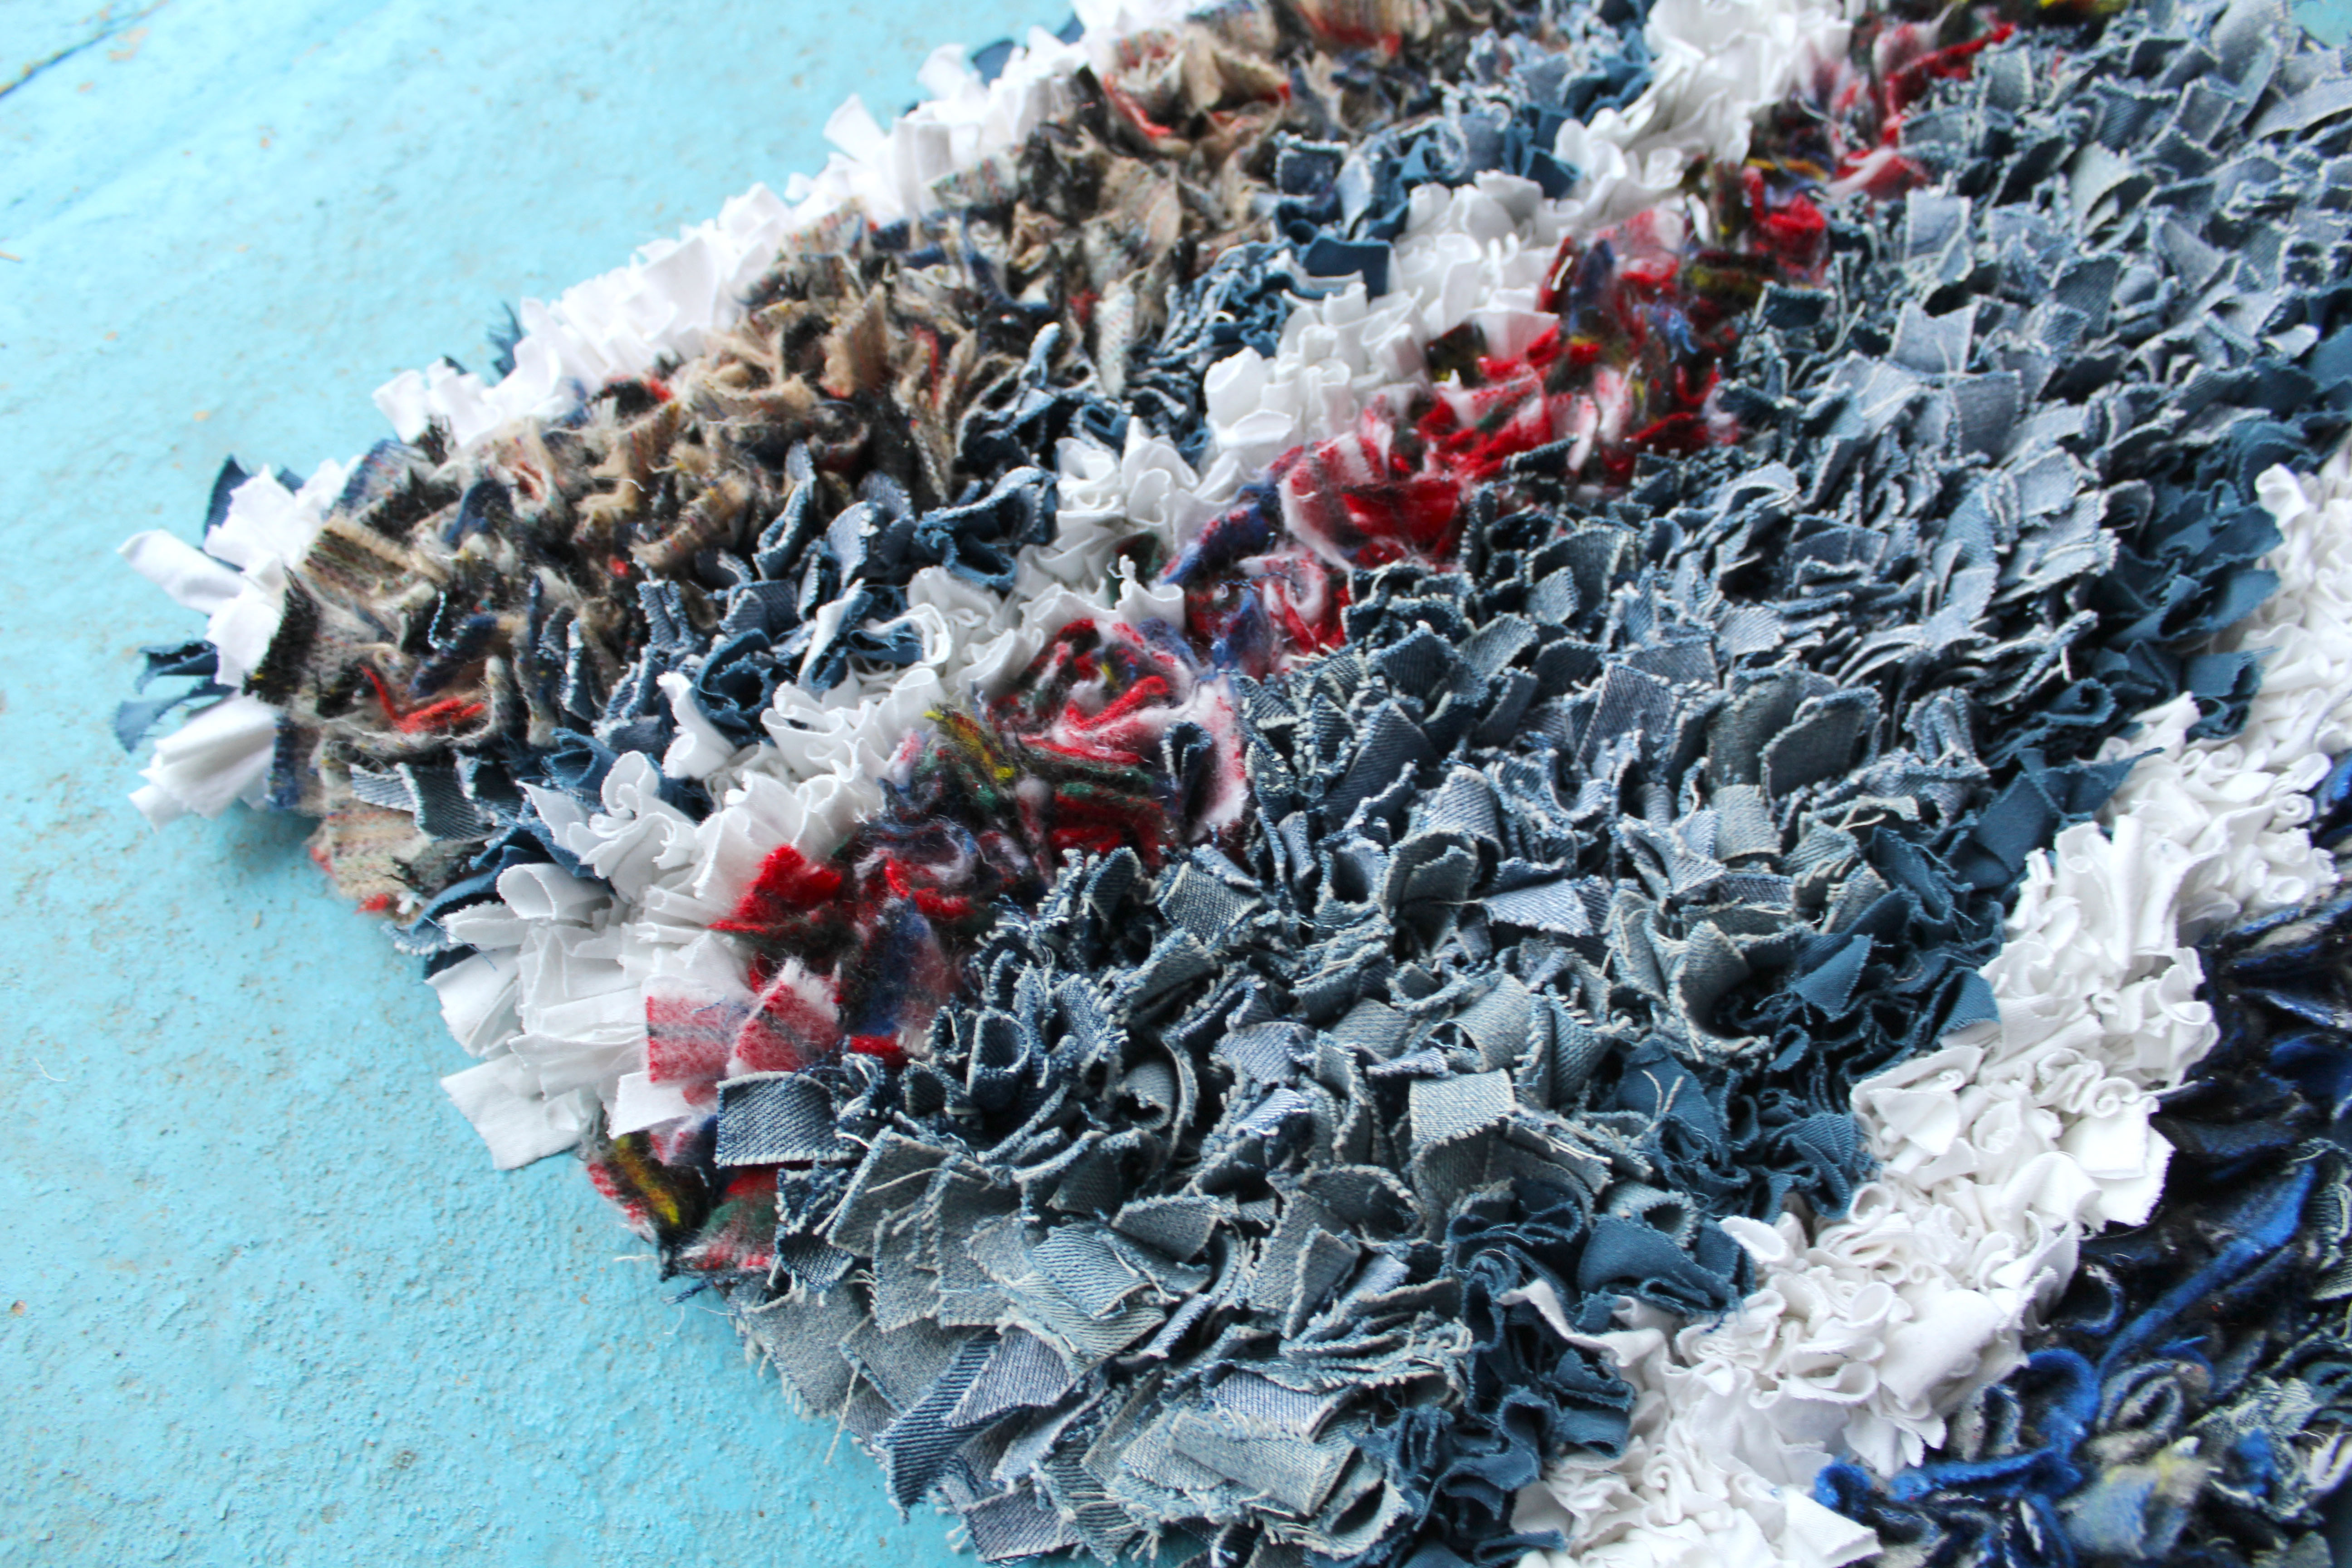 Denim, tartan and white shaggy rag rug in stripes made of old jeans